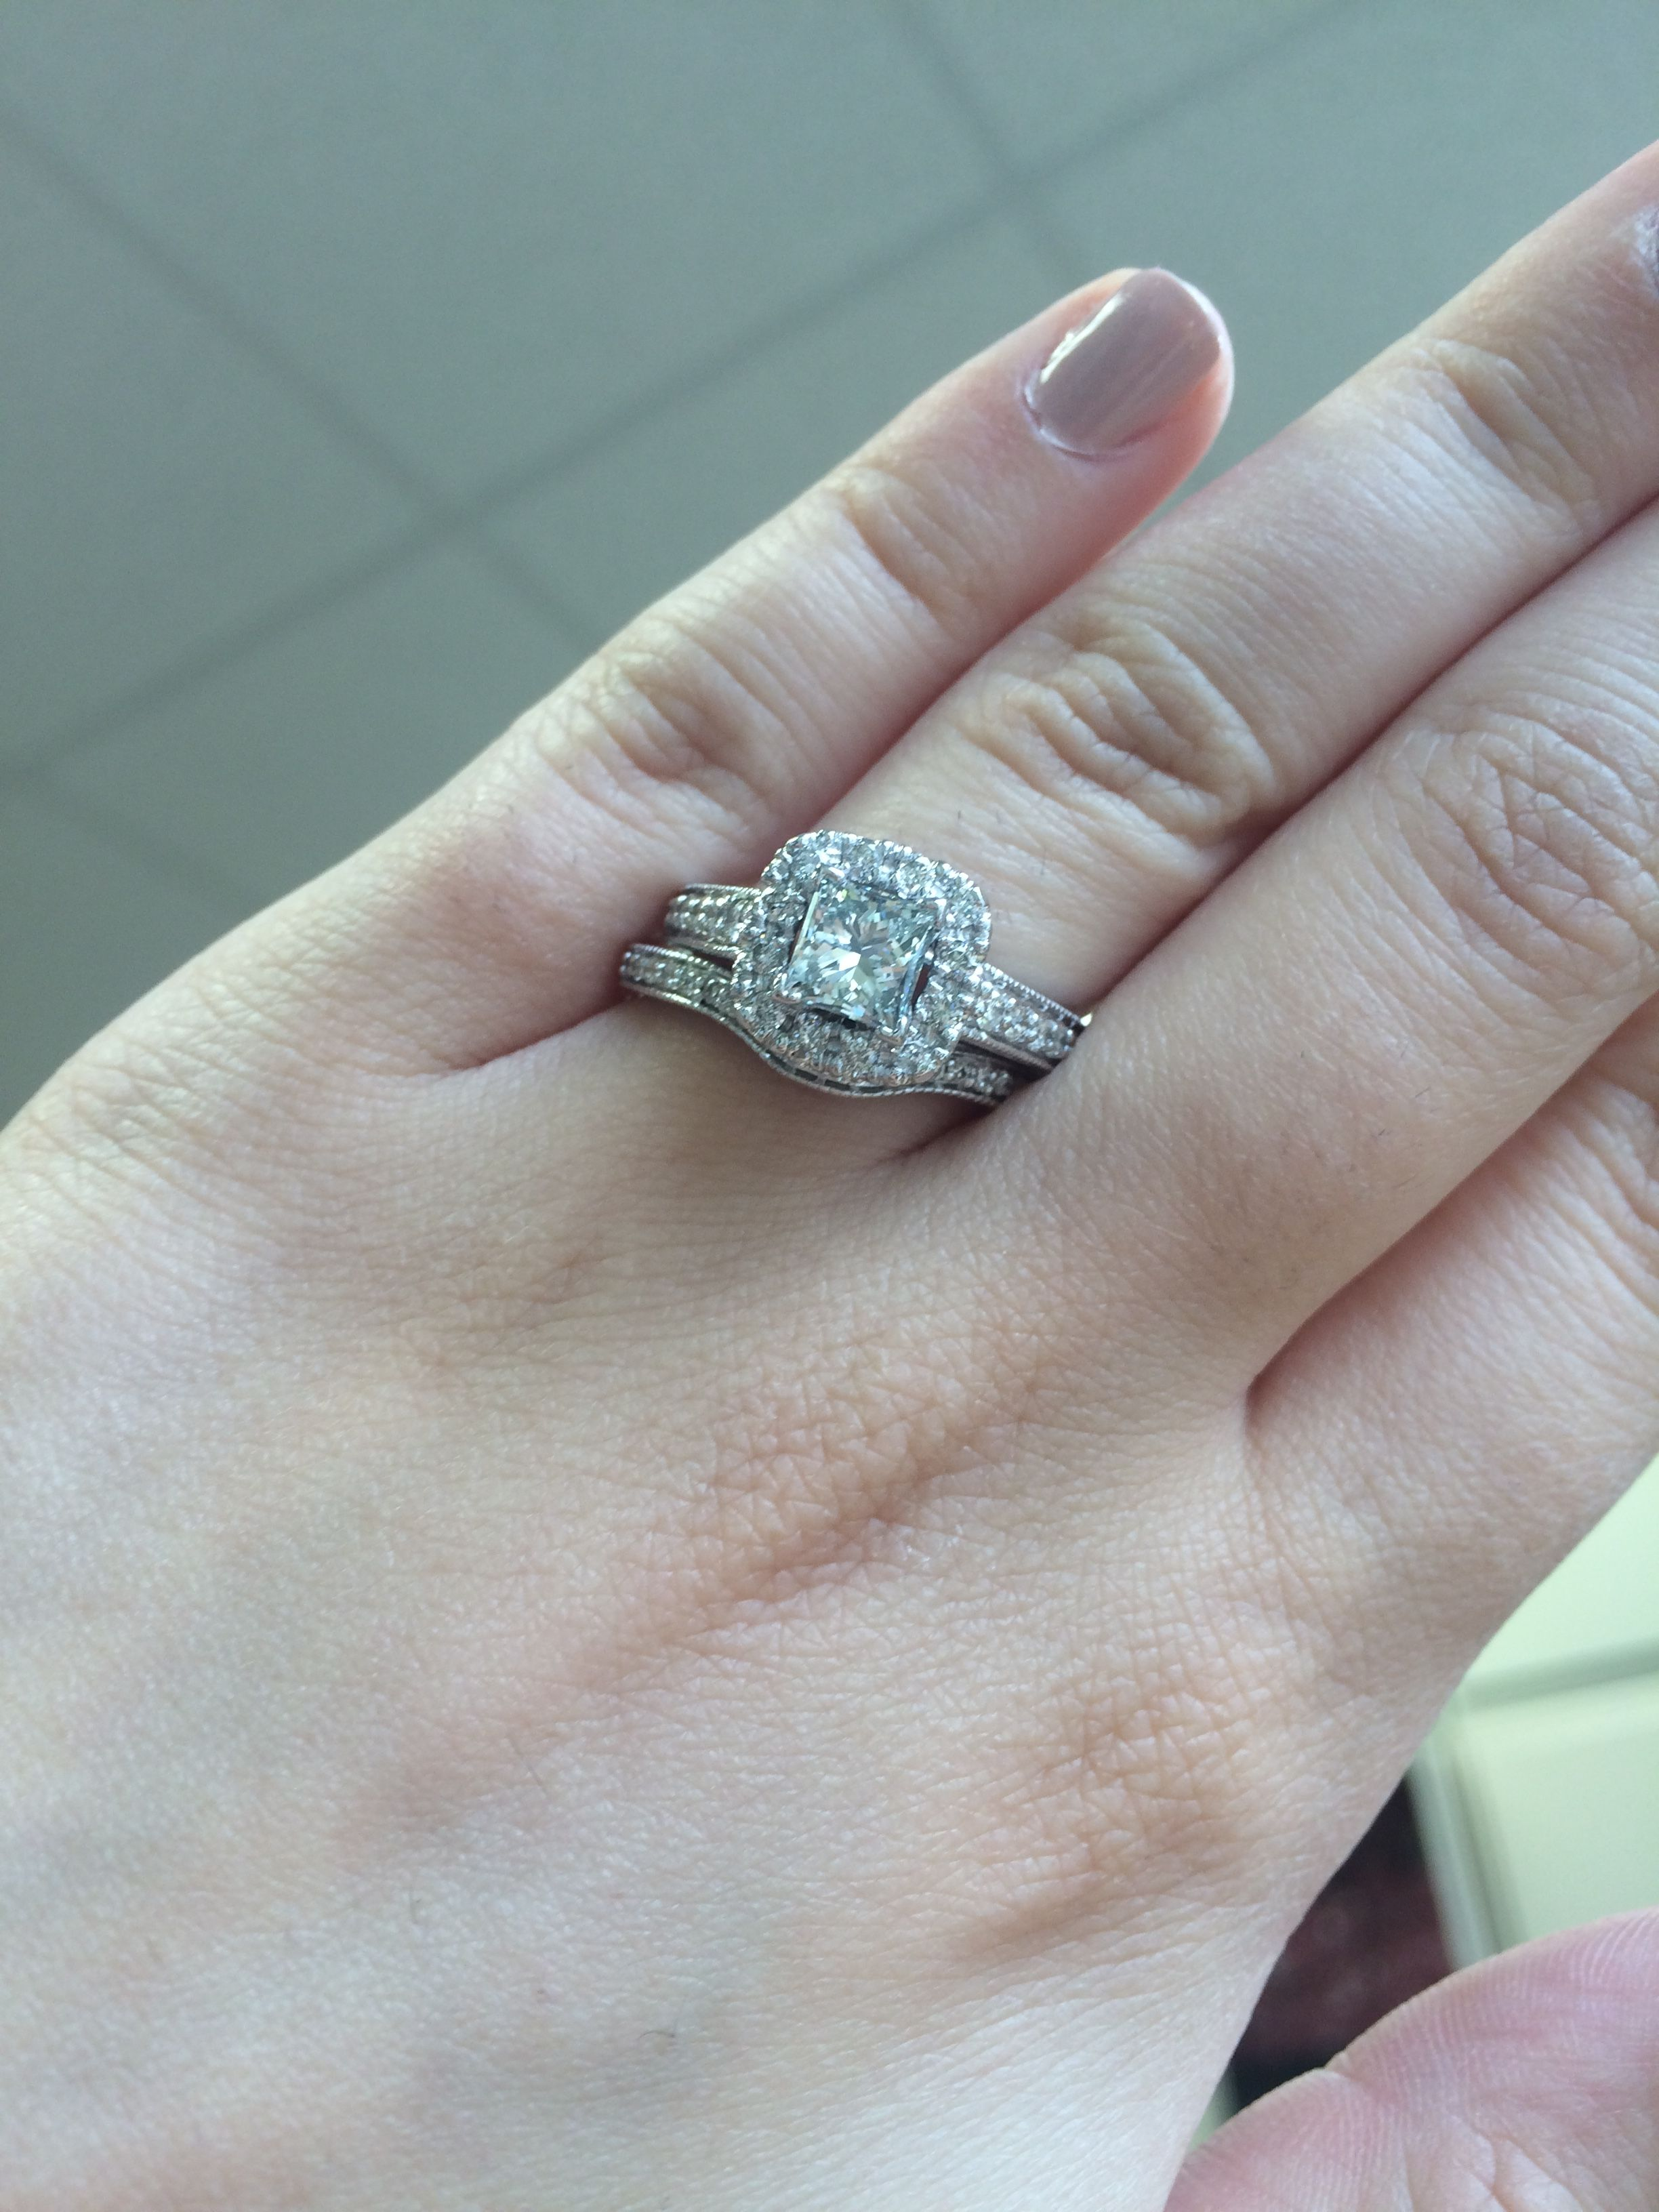 Rings on Hand Bridal Set BR708W (Engagement Ring and